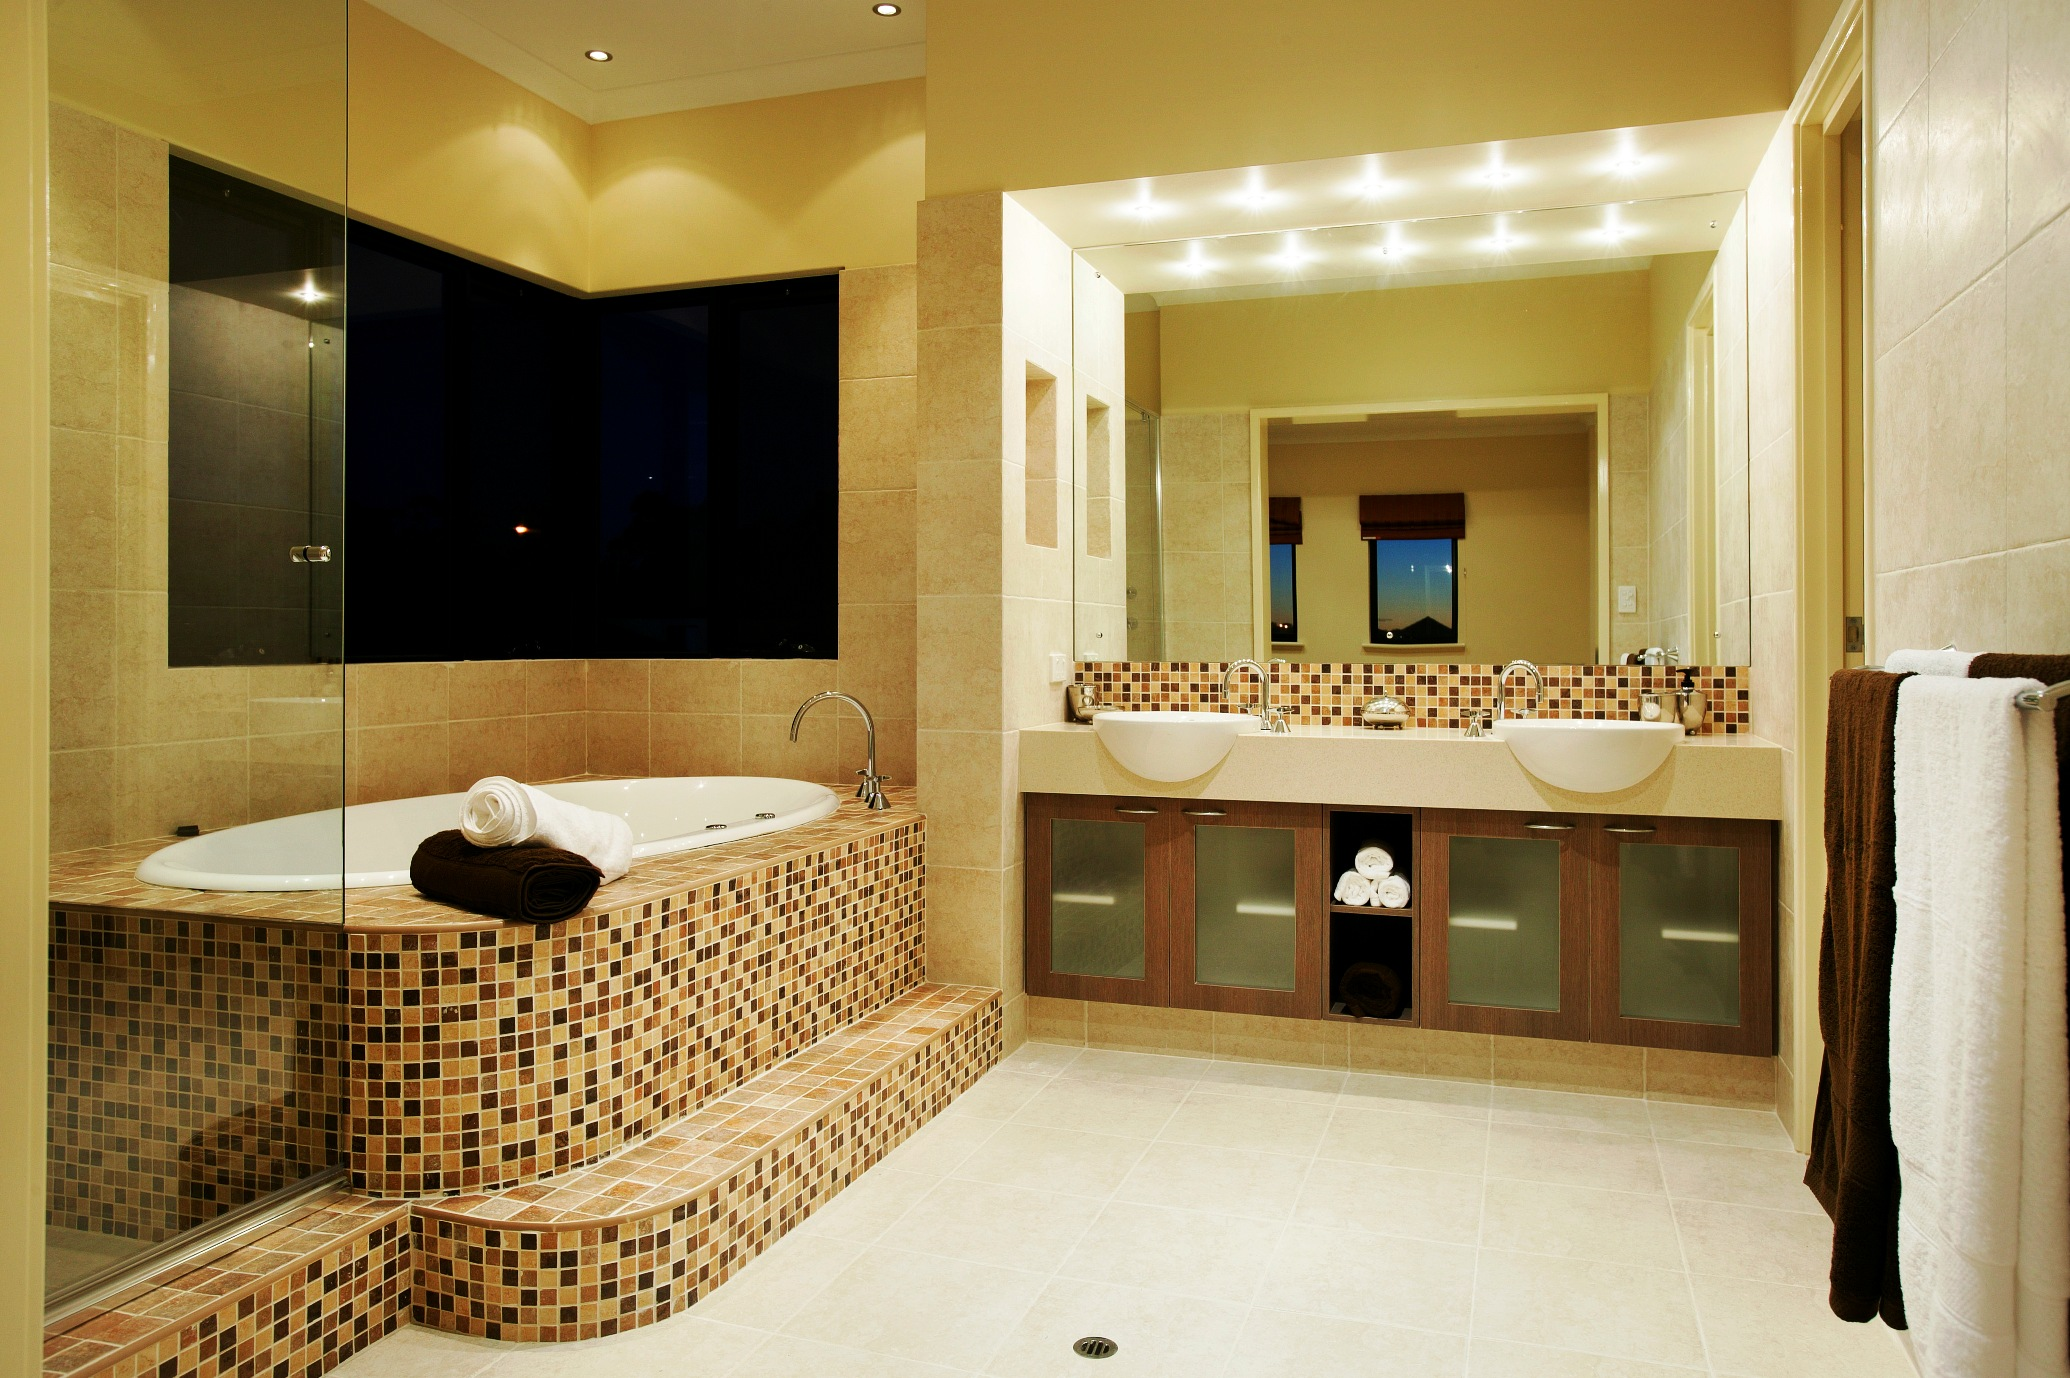 Outstanding Home Interior Bathroom Designs 2070 x 1378 · 789 kB · jpeg